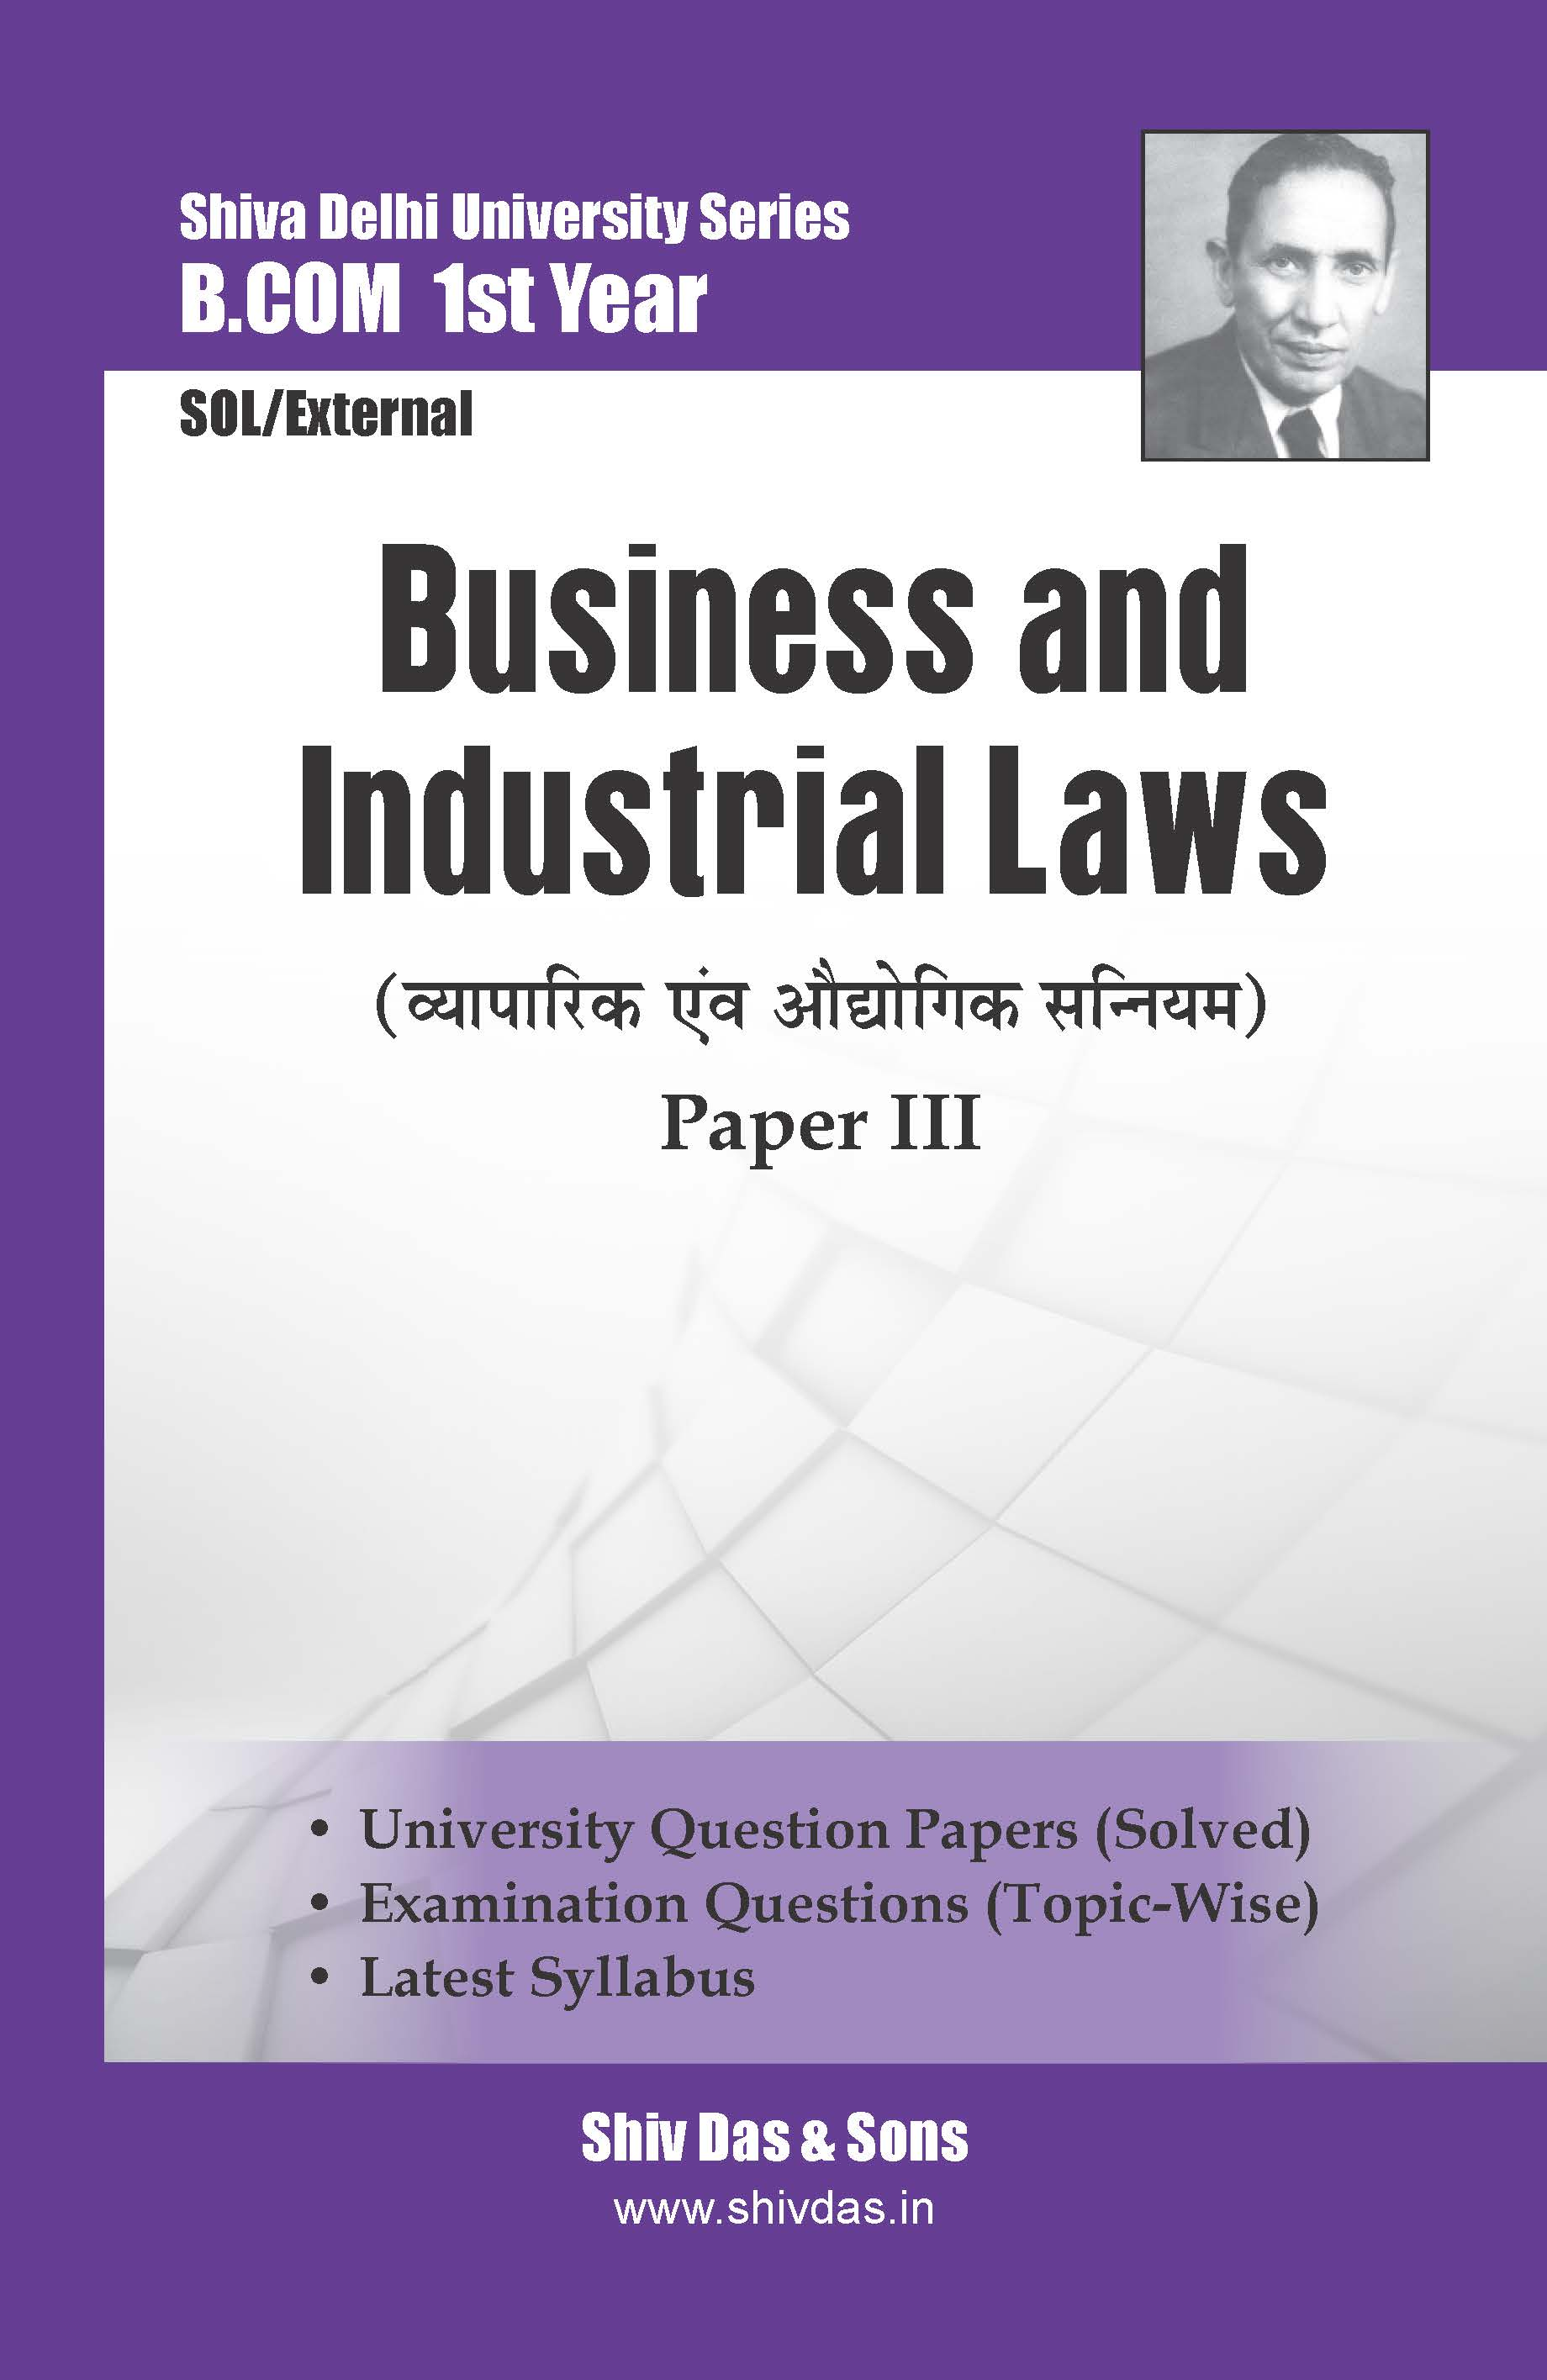 B.Com-1st Year-SOL/External-Business and Industrial Laws (Hindi Medium)-Shiv Das-Delhi University Series